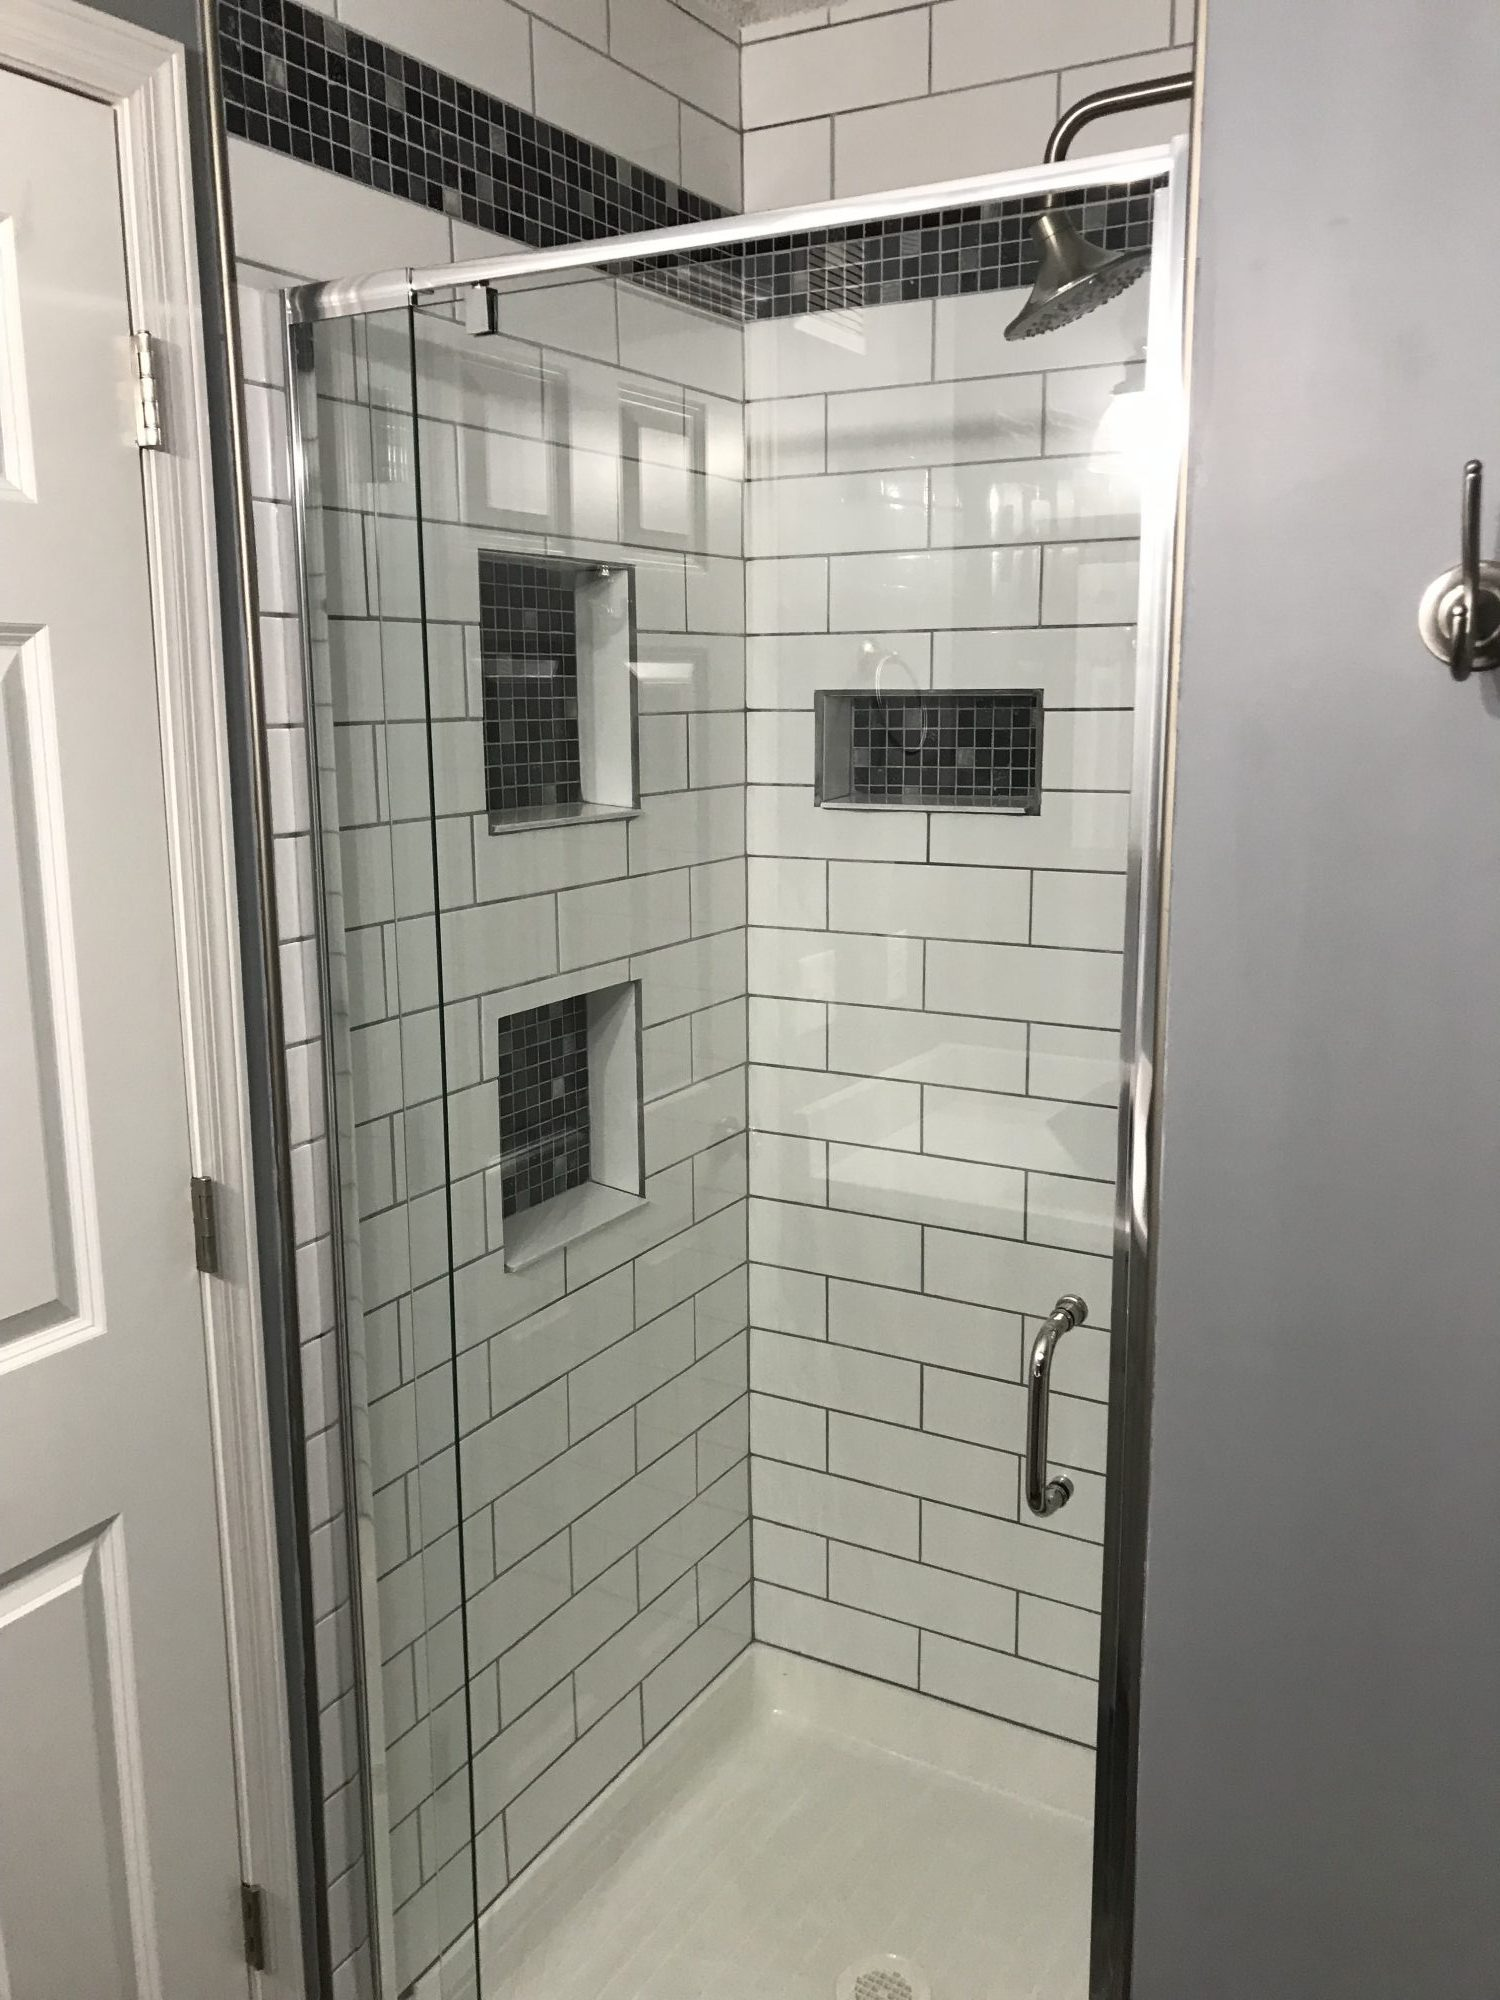 Tile Shower Glass Door